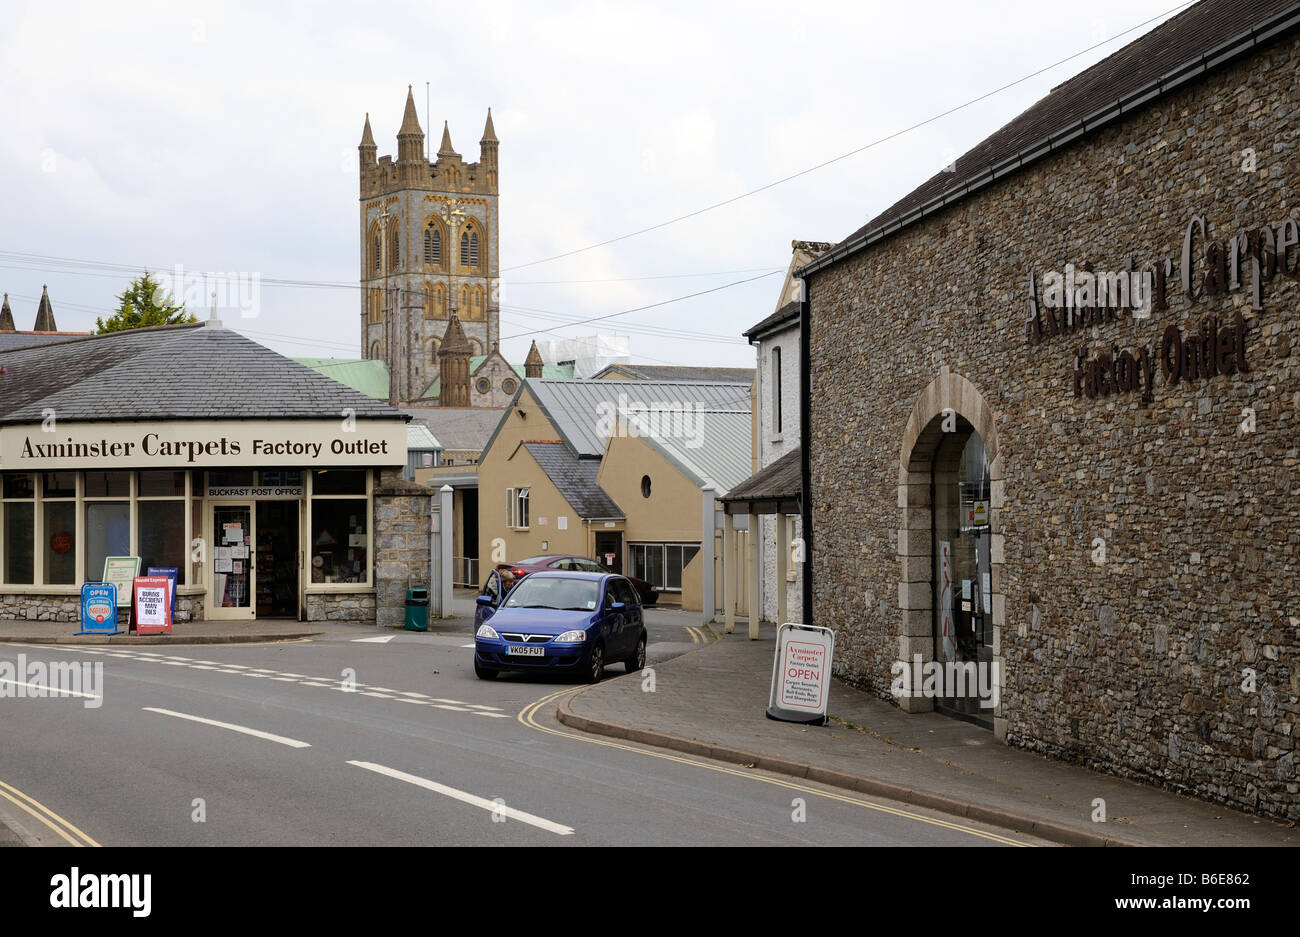 Axminster Carpets Stock Photos & Axminster Carpets Stock Images - Alamy